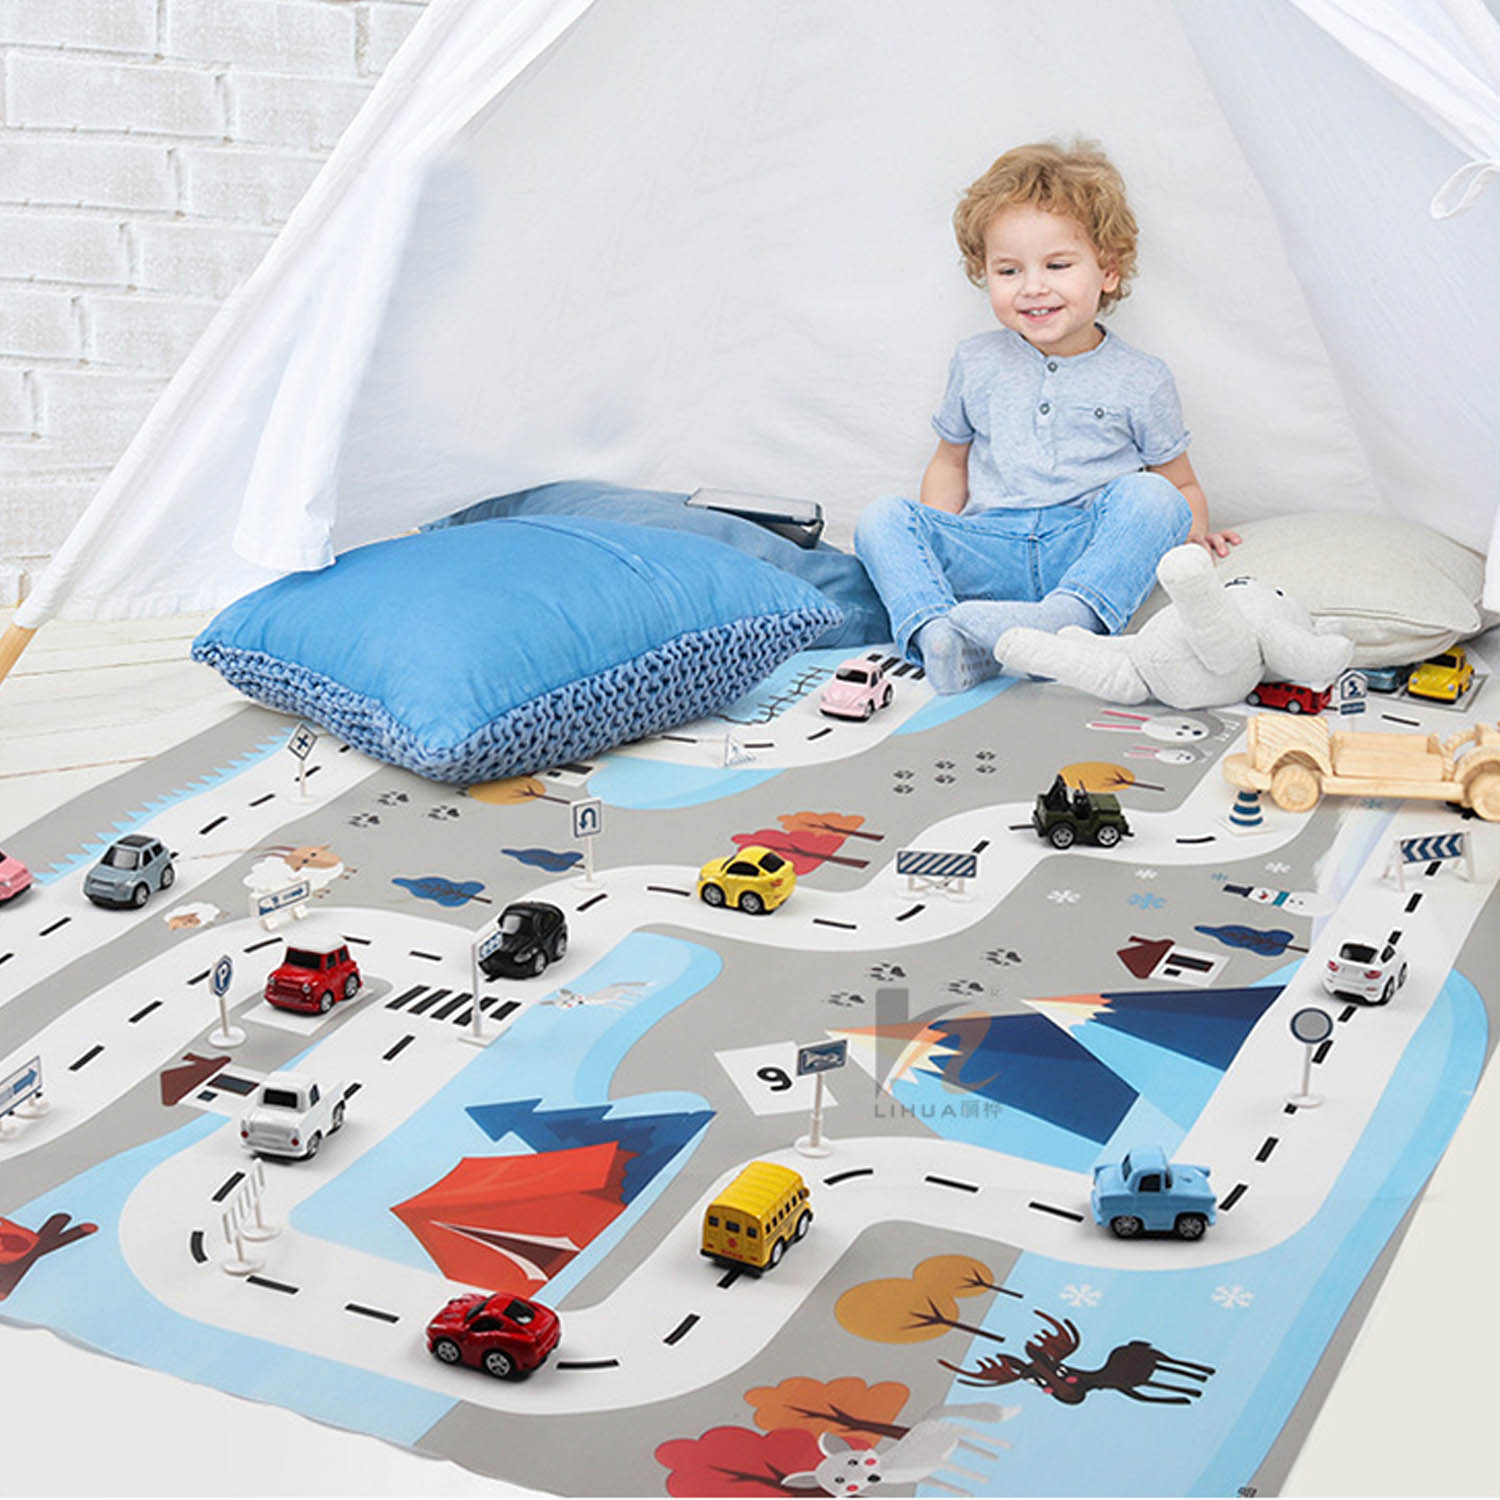 19pcs Kids City Road Playmat Taffic Carpet Highway Map Blanket City Scene Playing Crawling Game Mat With Traffic Road Signs Toy